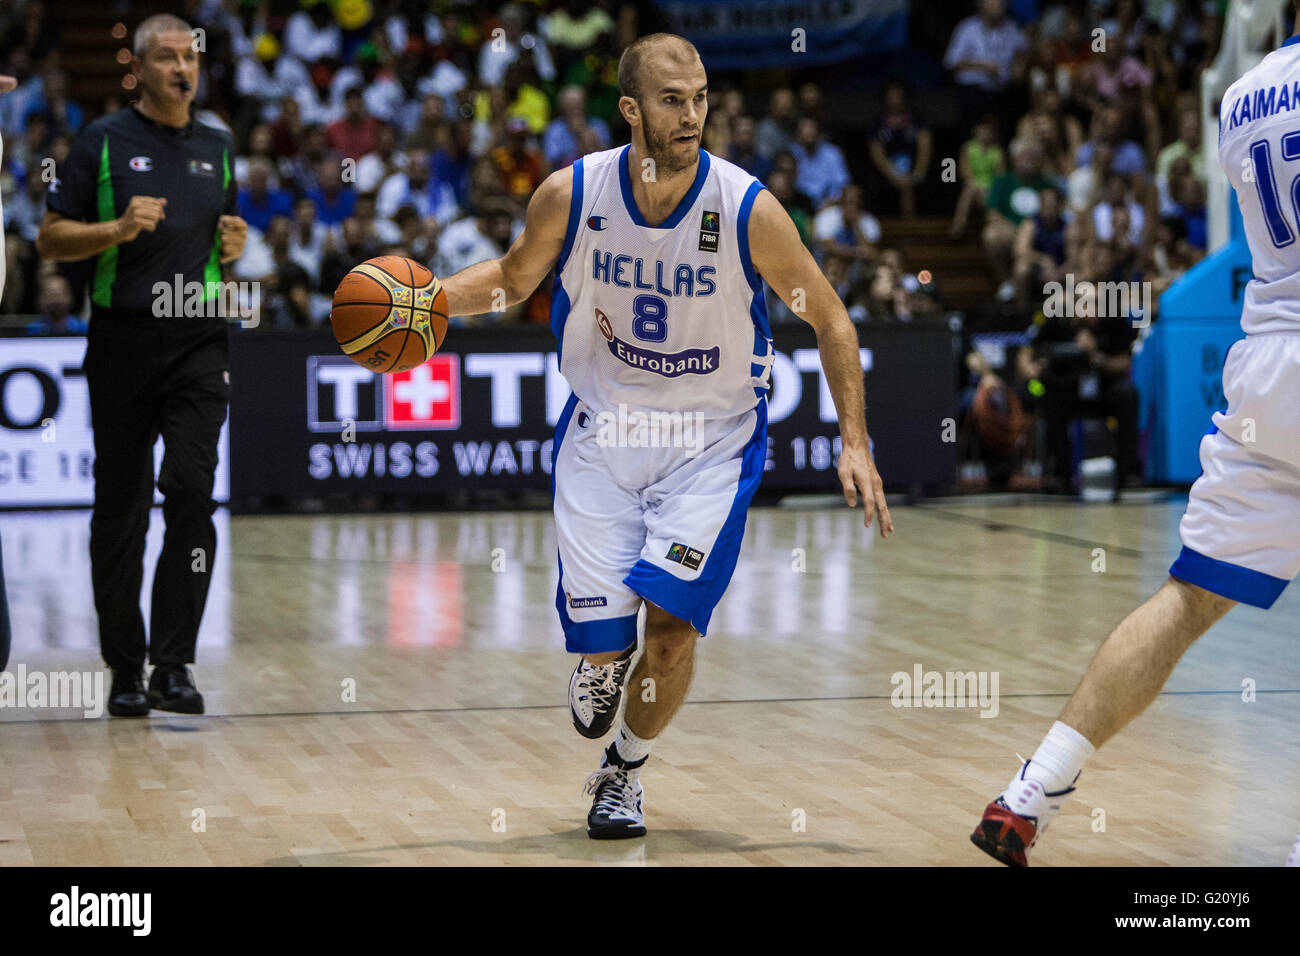 Nick Calathes, player of Croatia, drives the ball during FIBA Basketball World Cup 2014 Group Phase match, on September - Stock Image